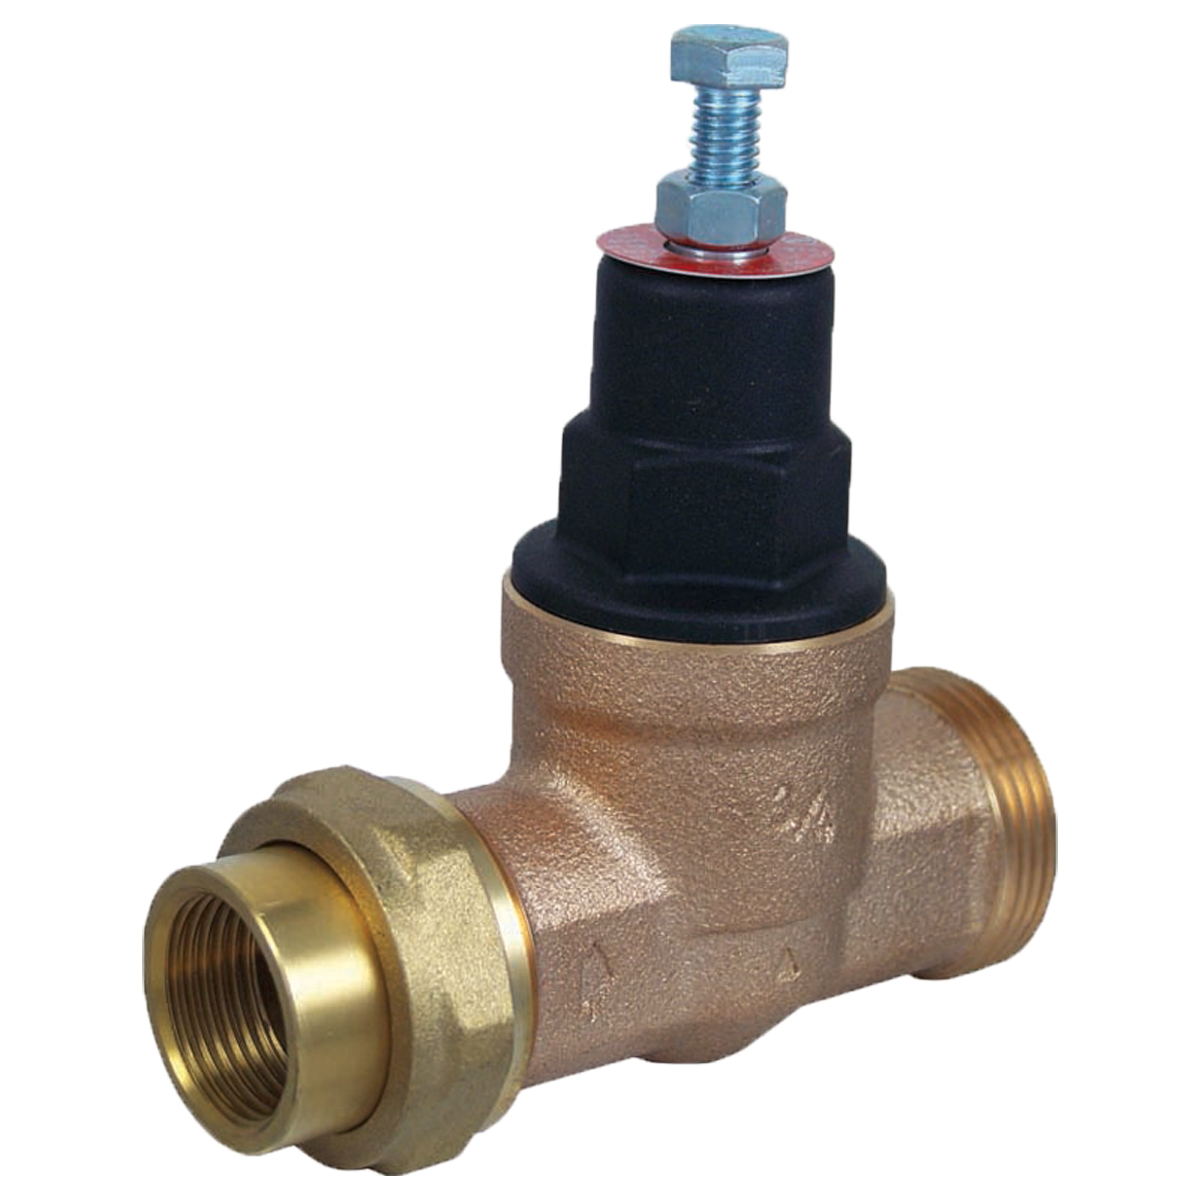 Pressure Reducing Valves Supplies